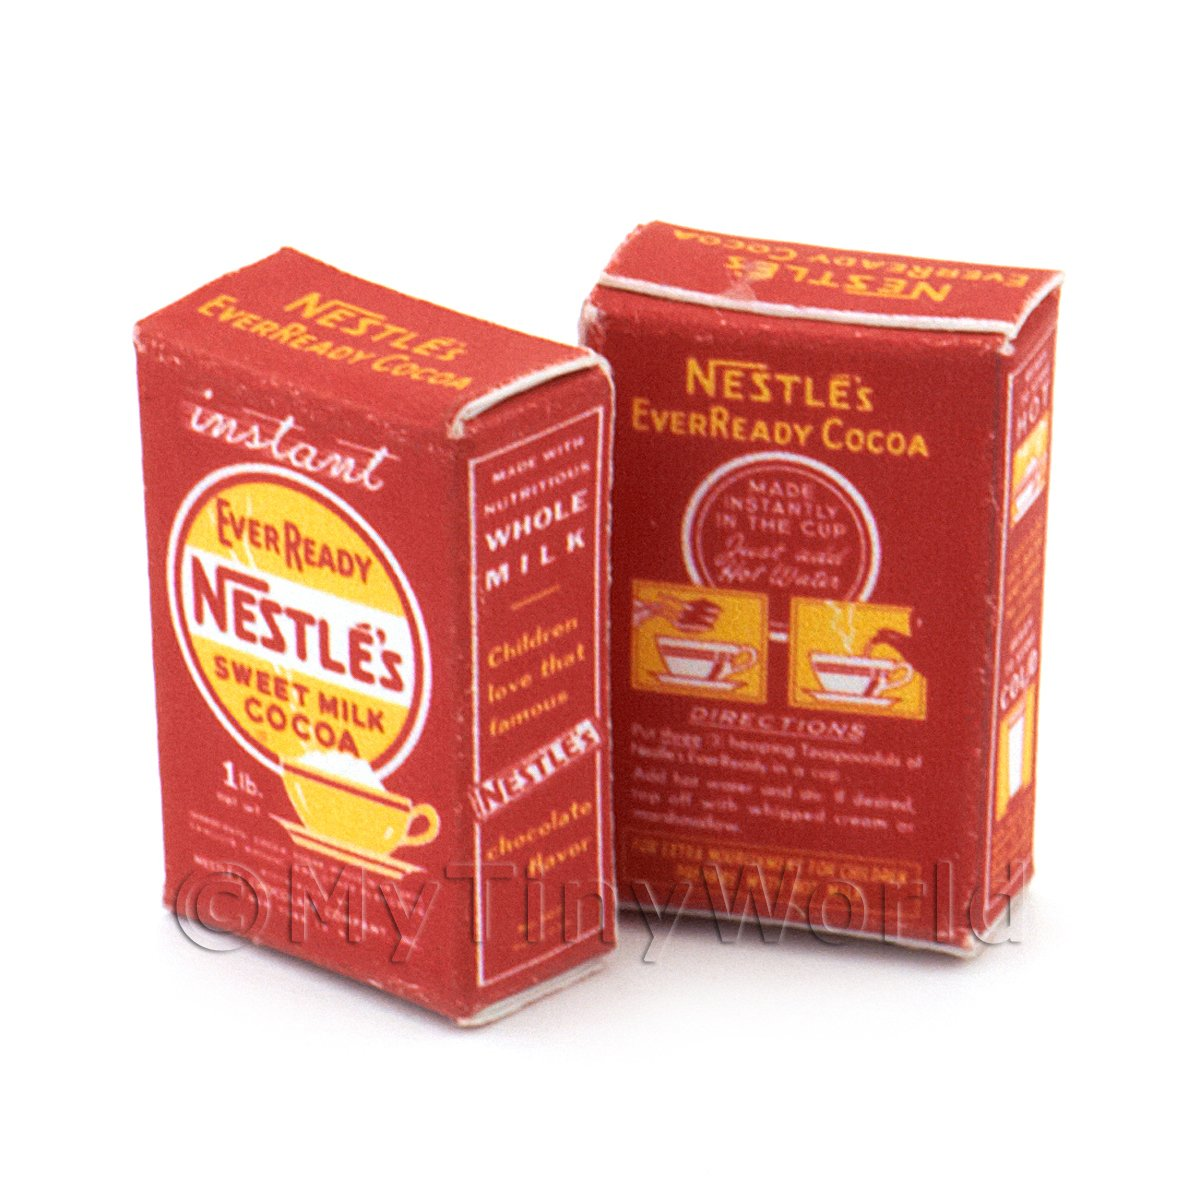 Dolls House Miniature Nestle Cocoa Box From 1930-50s